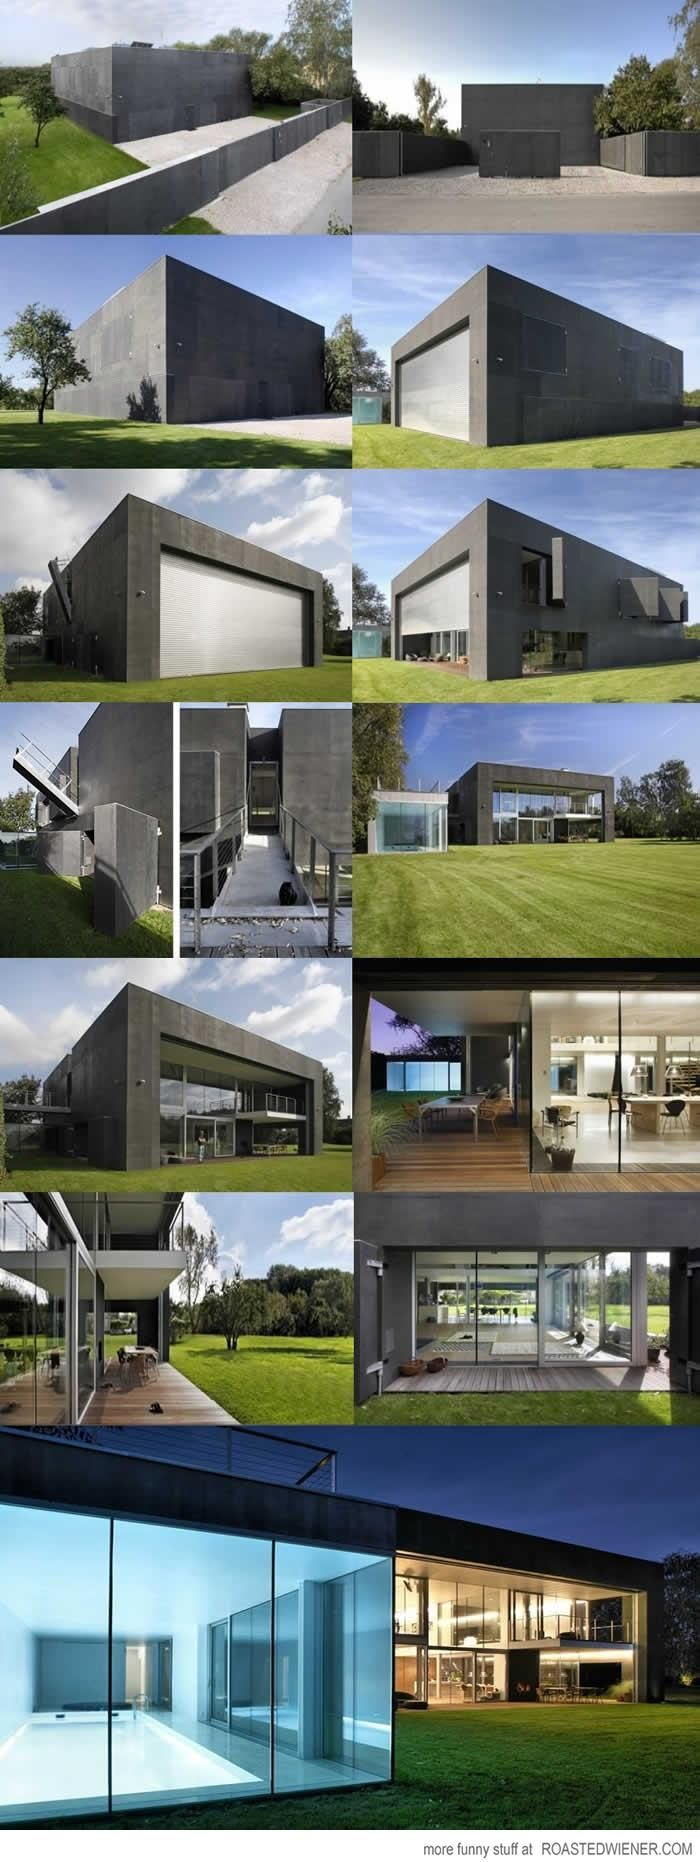 HOUSE READY FOR THE ZOMBIE APOCALYPSE | survival | Pinterest | House on underground concrete house design, minecraft hut design, home design, best underground bunker design, modern bunker design, zombie protection house, zombie cakes design, zombie apocalypse house, guard house design, minimal house design, earthquake proof house design, coach house design, oban & 2 by agushi workroom design, earthquake resistant building design, fortified house design, hurricane proof house design, defensive house design, native house design,